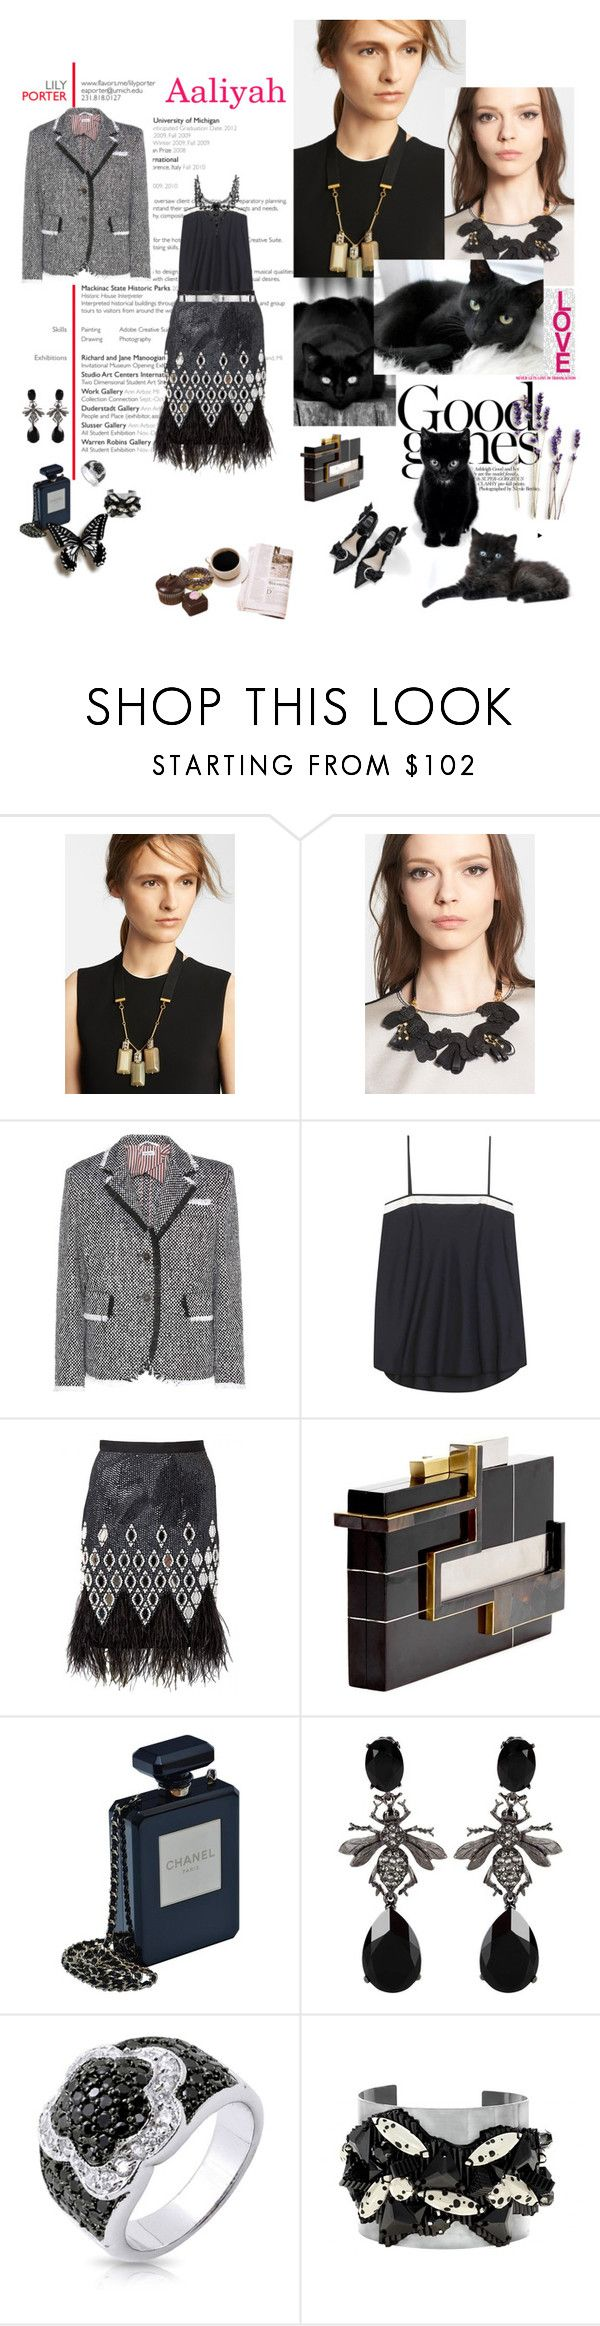 """Aaliyah 2016-513"" by aaliyah ❤ liked on Polyvore featuring Marni, Thom Browne, Matthew Williamson, Jill Haber, Chanel, Oscar de la Renta, Bling Jewelry, Forest of Chintz and polyvoreeditorial"